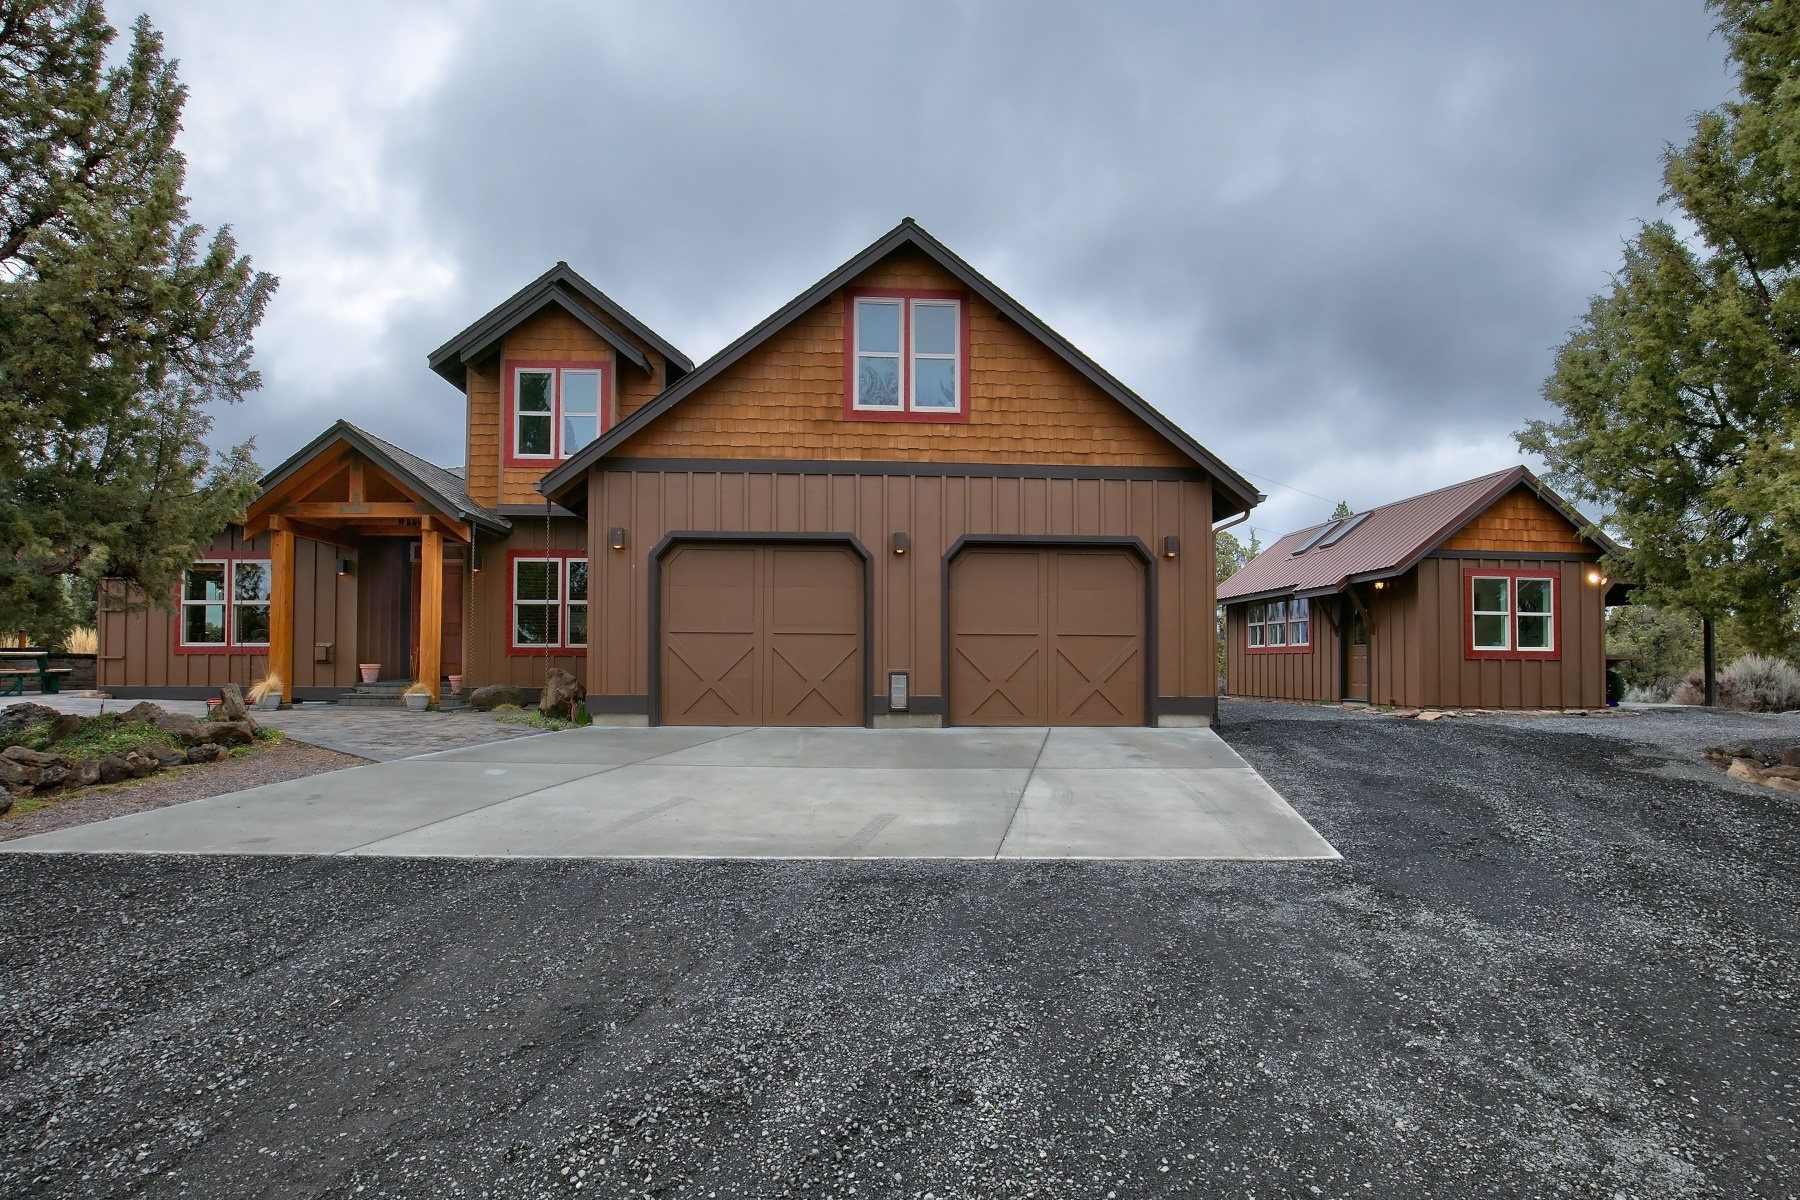 Single Family Home for Sale at Odin Falls Home on Acreage 8163 NW Spruce Ave Redmond, Oregon, 97756 United States